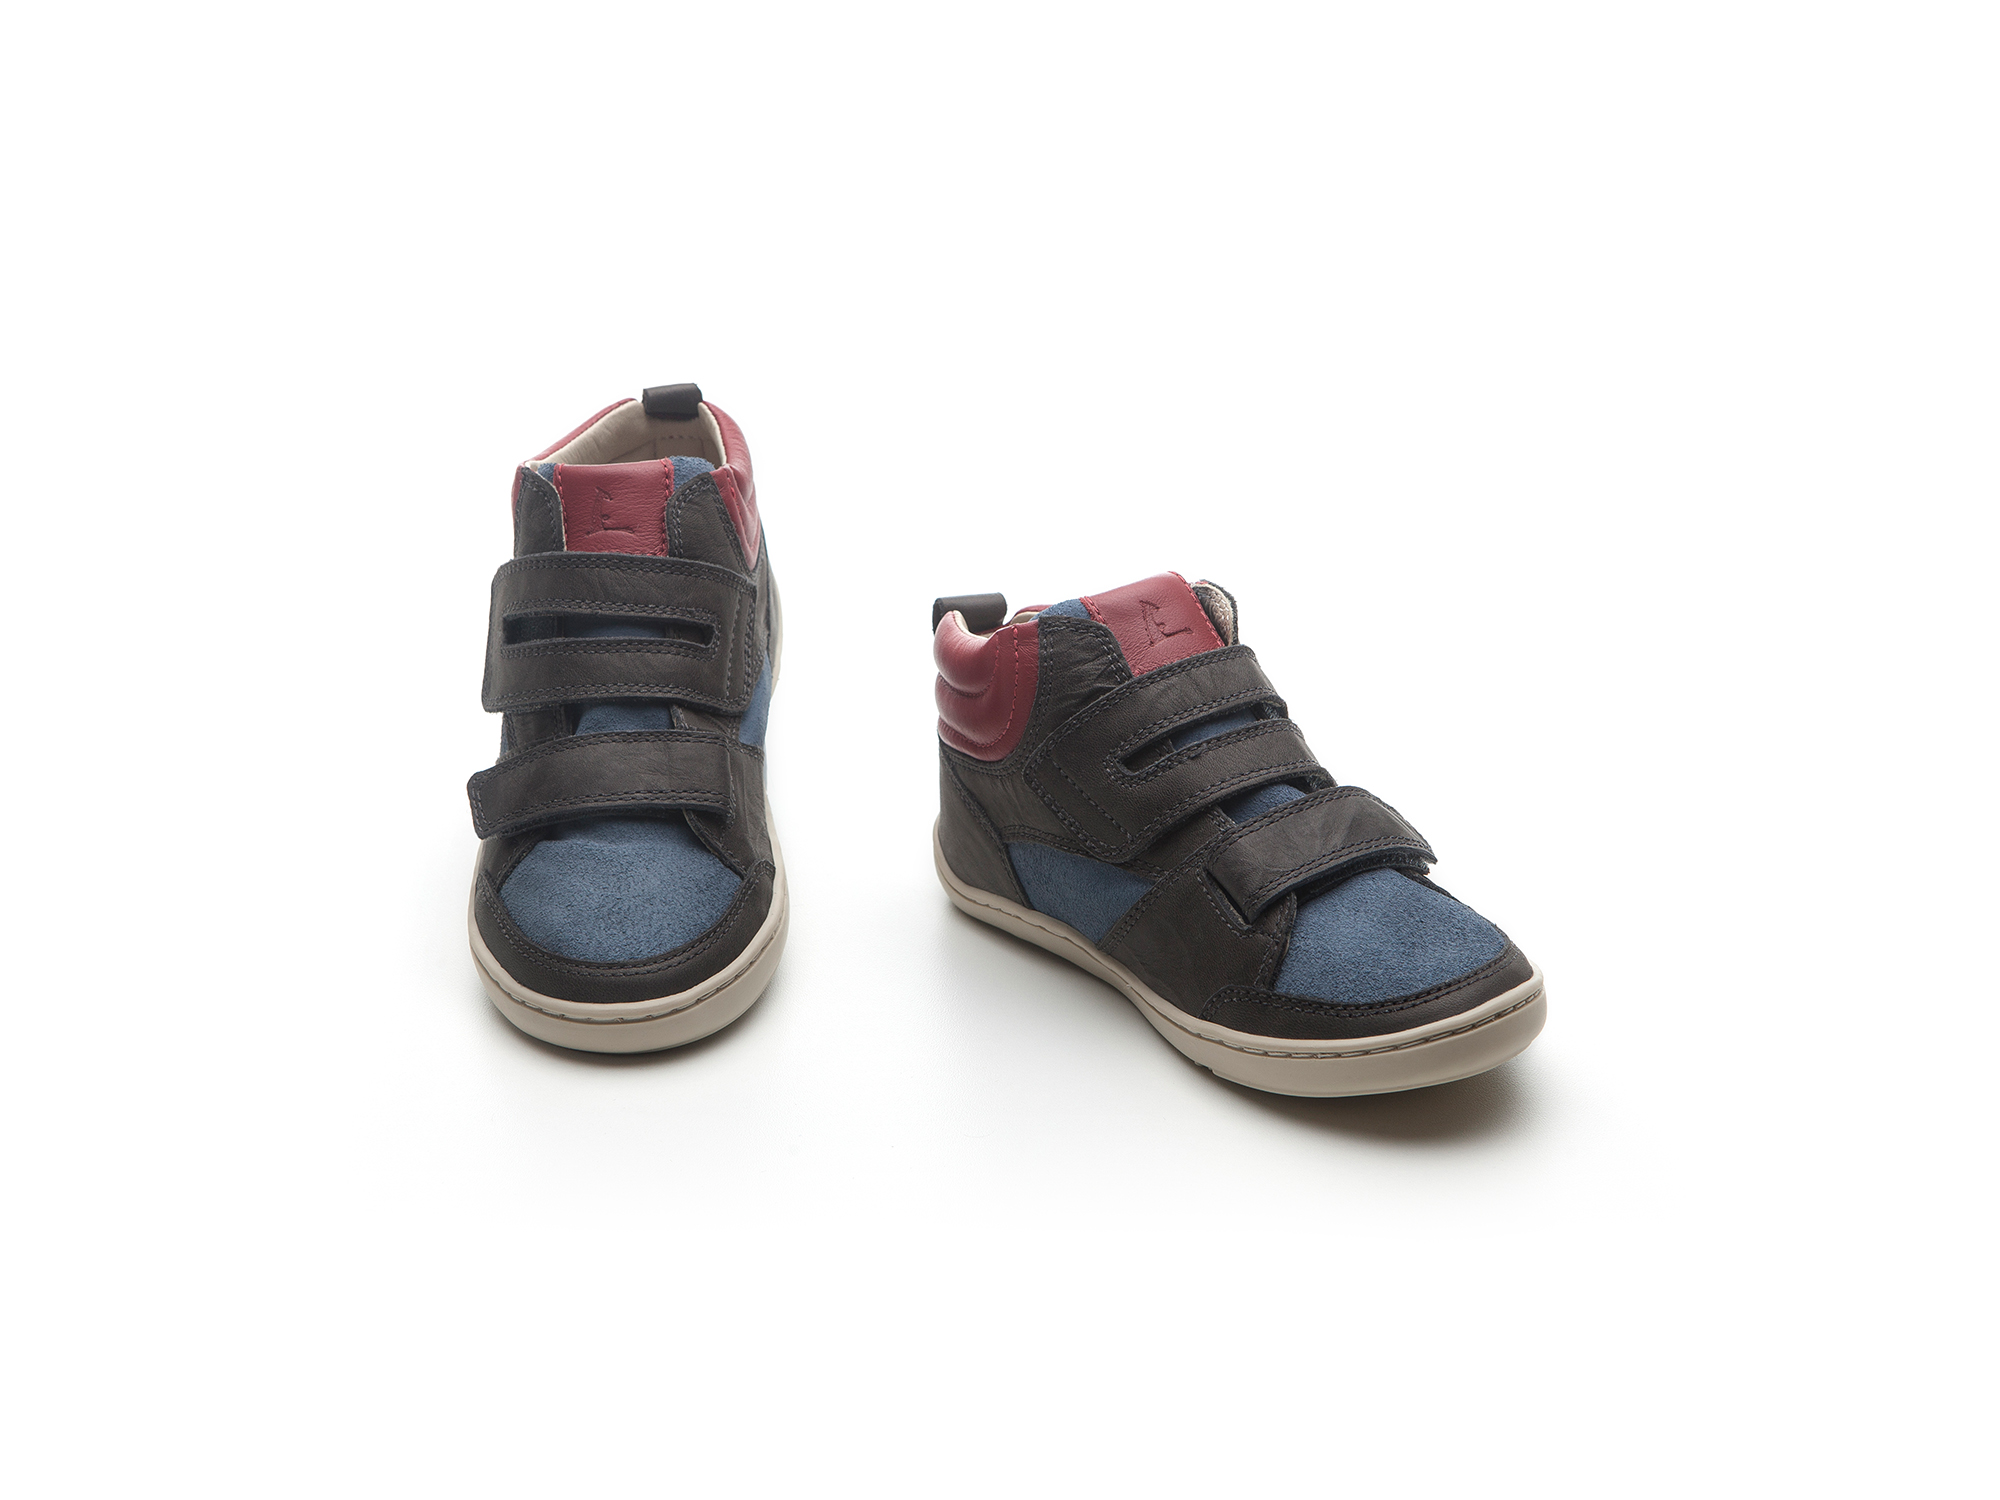 Bota Surface Black Crush/ Dry Denim Suede/ Tomato Junior 4 à 8 anos - 1